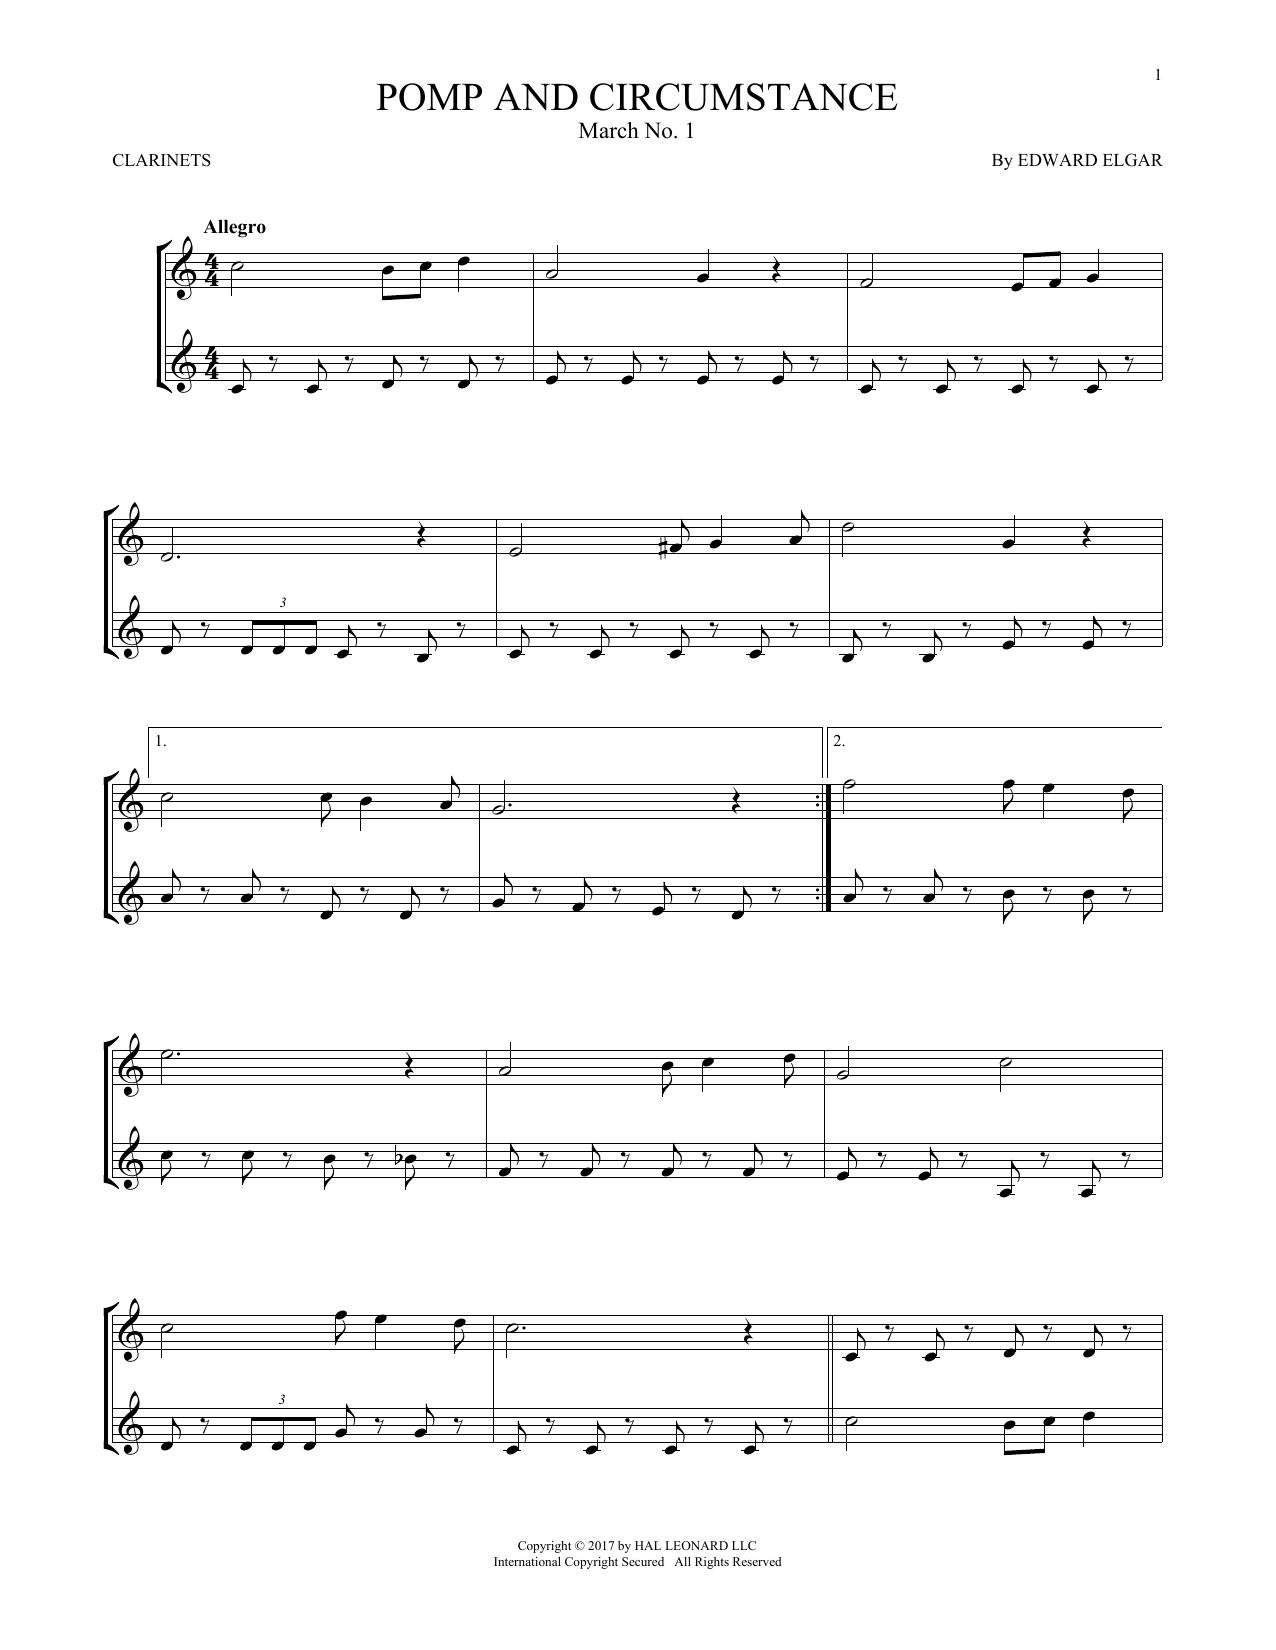 Pomp And Circumstance, March No. 1 (Clarinet Duet)